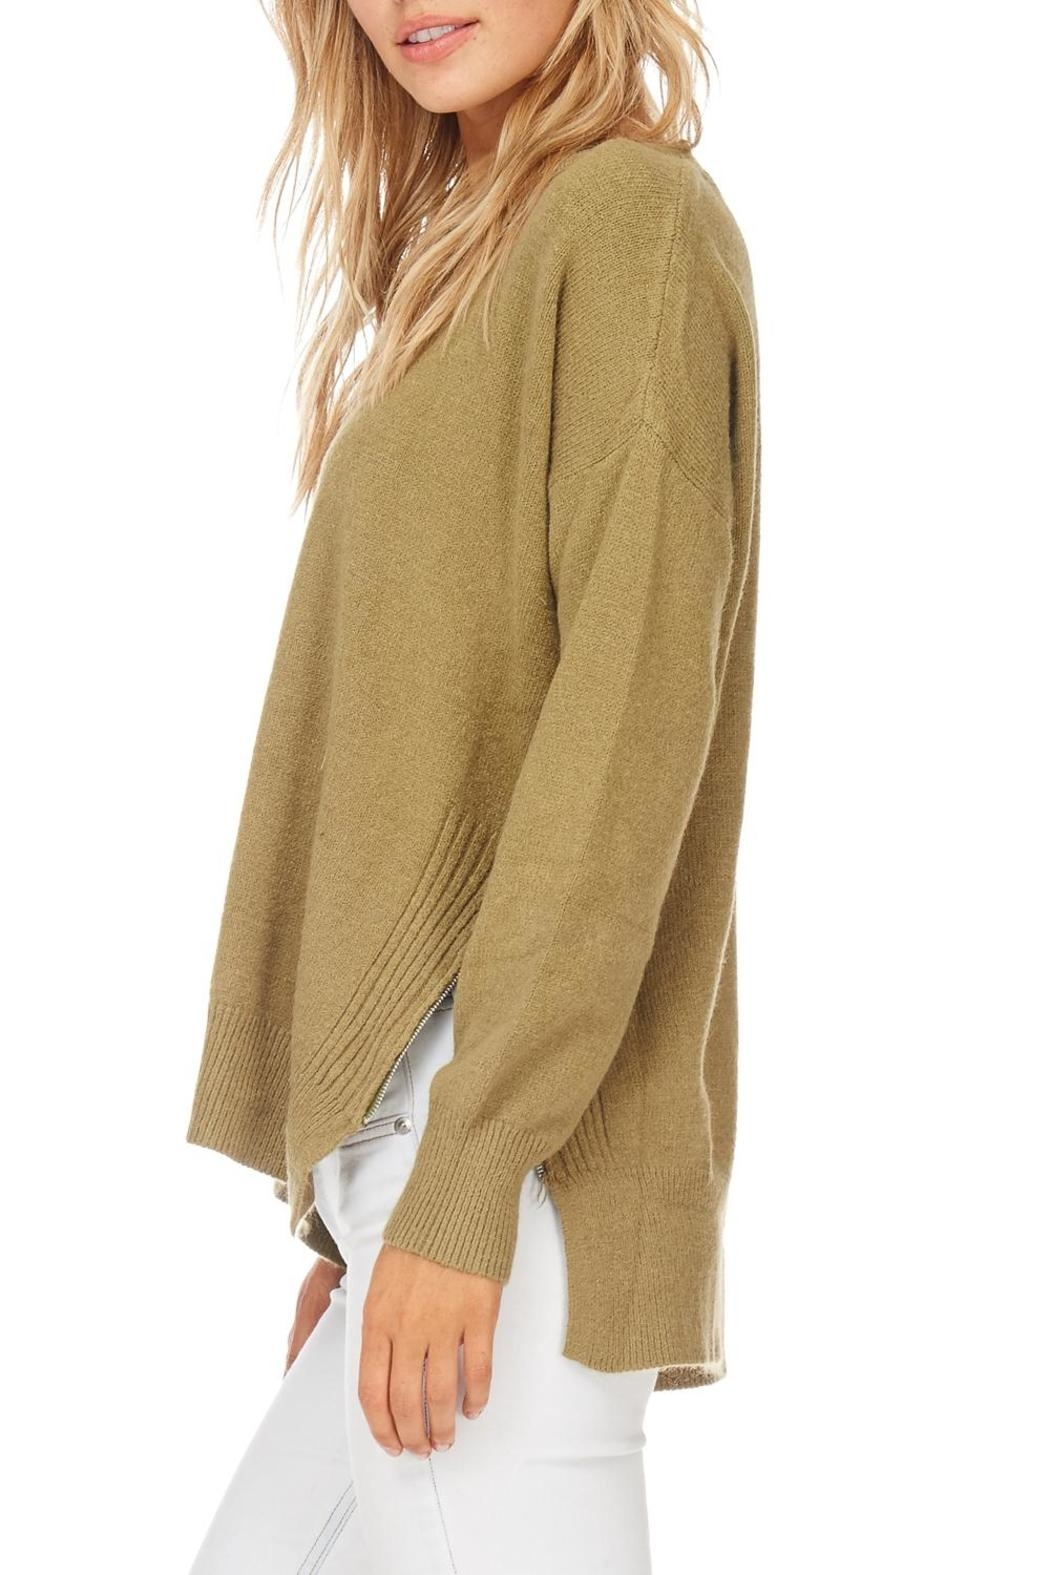 Hem & Thread Olive Crew Neck Sweater - Side Cropped Image